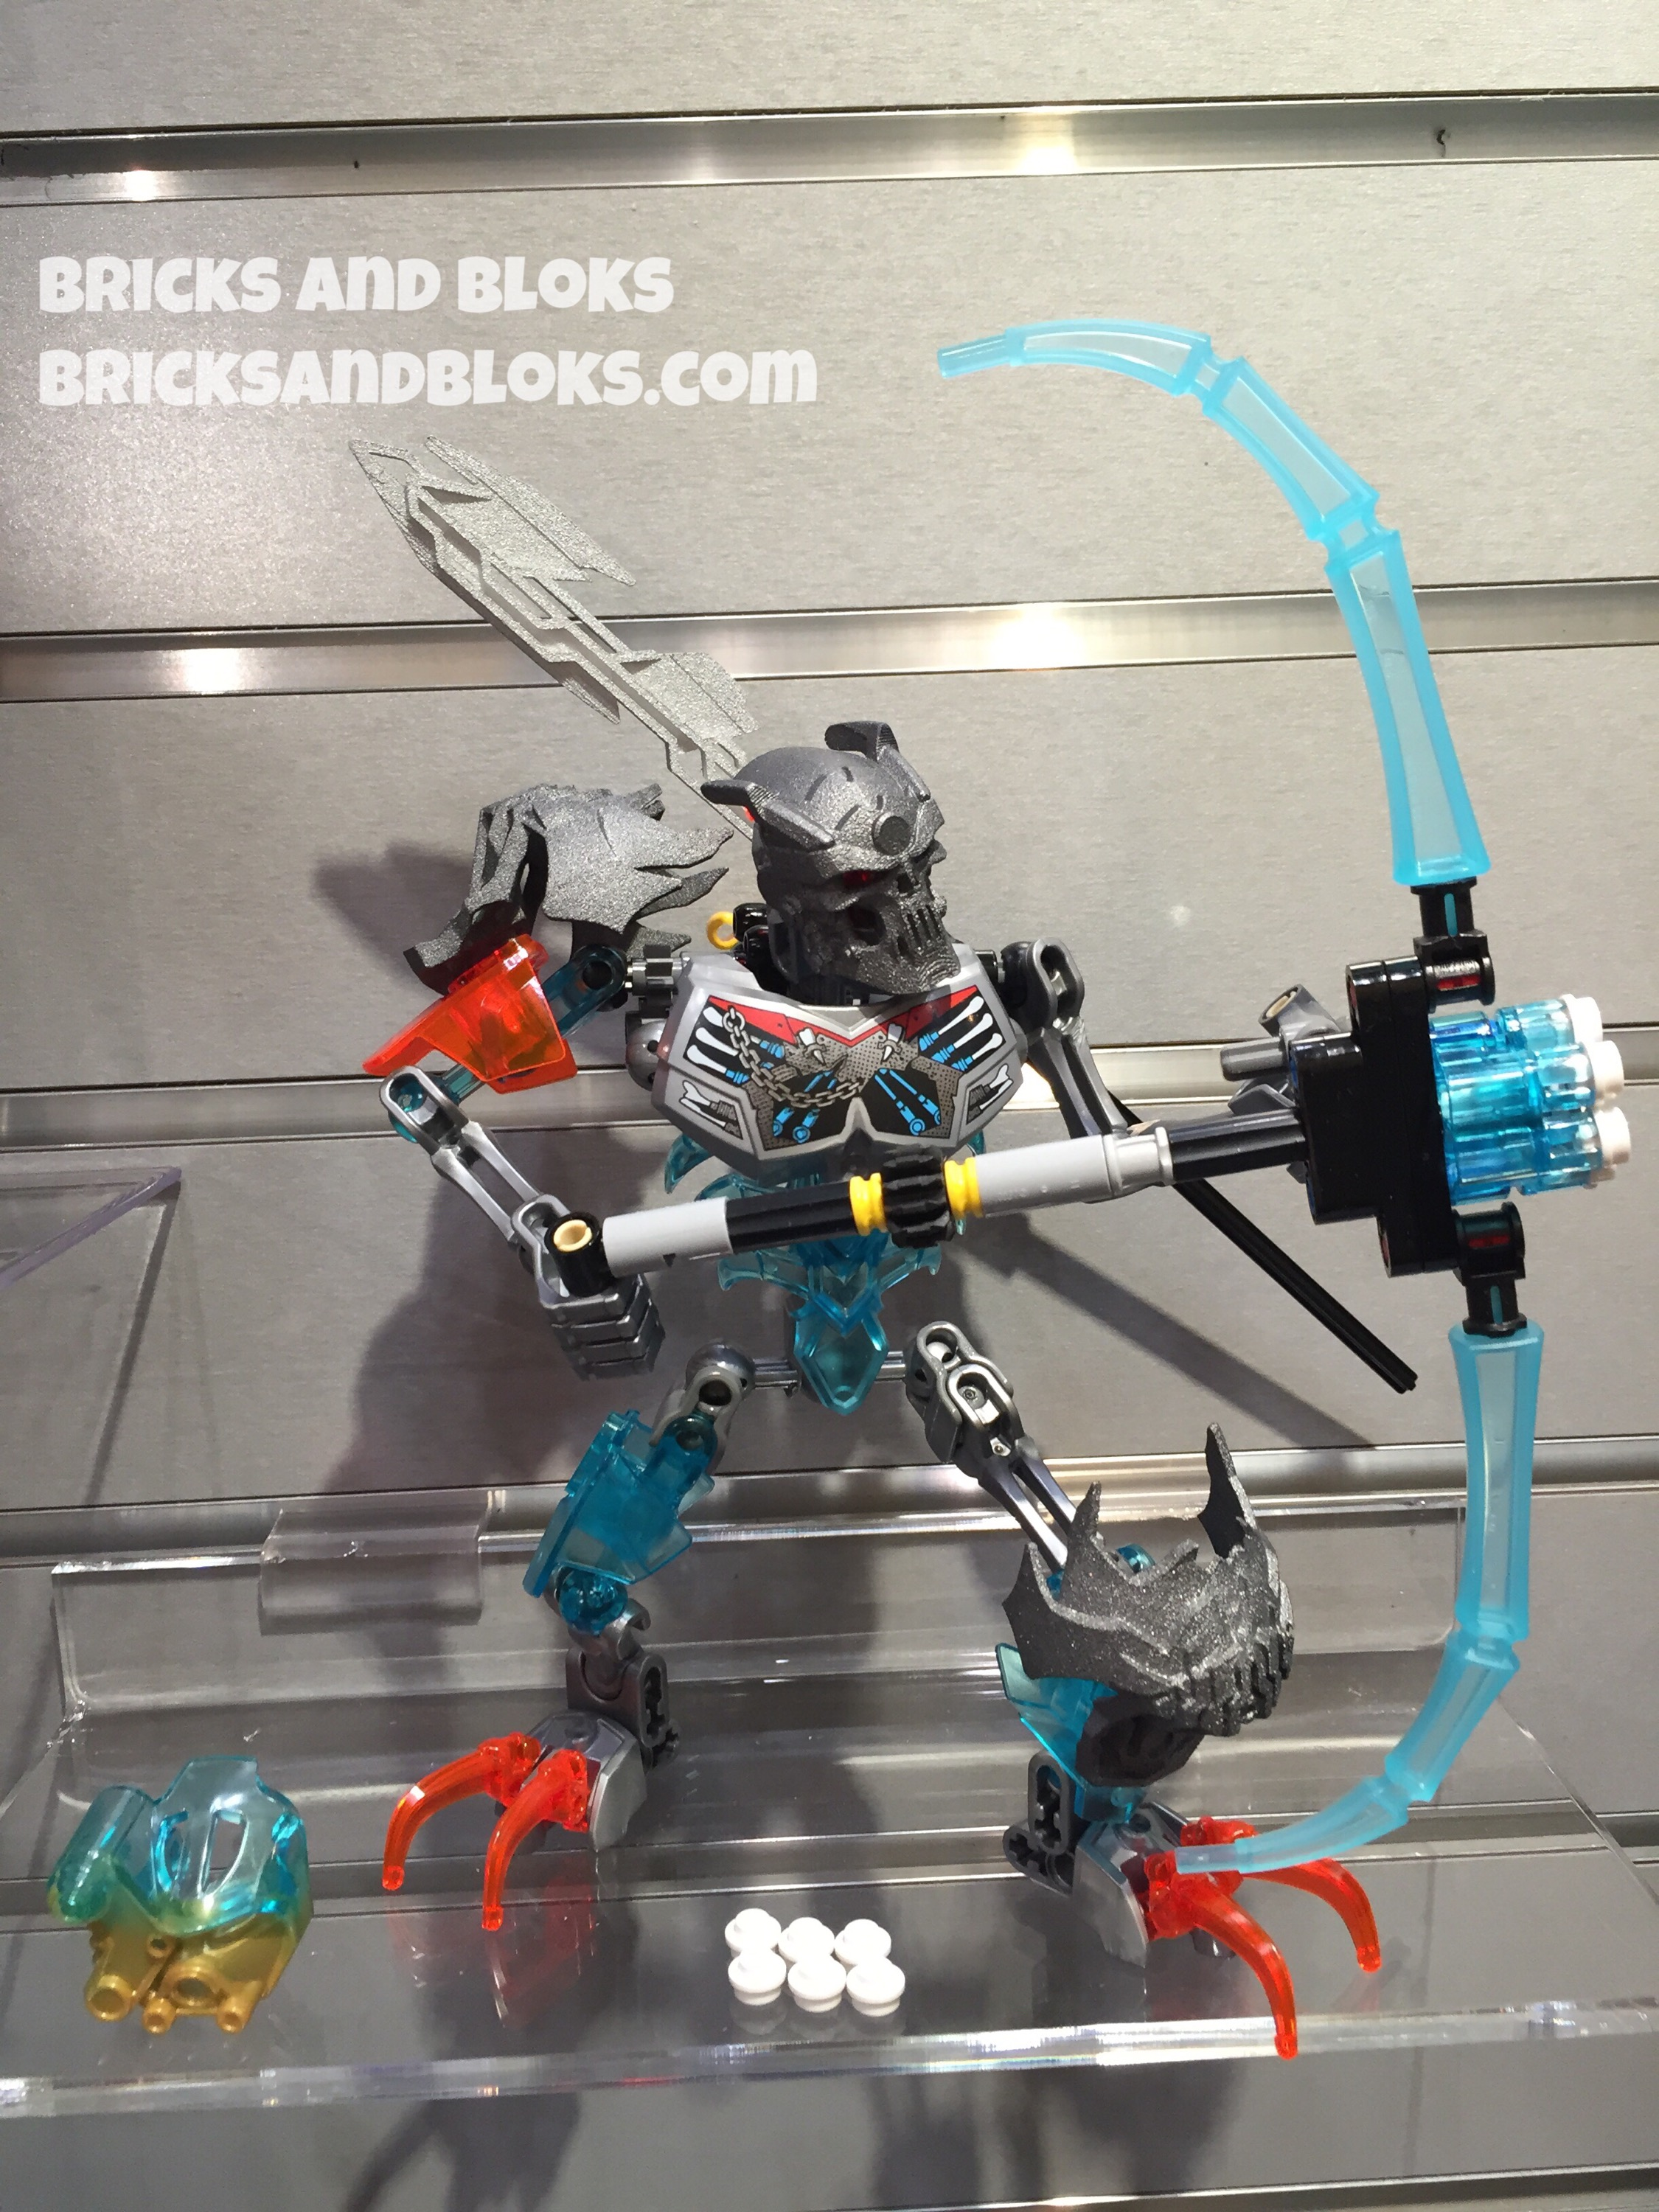 New York Toy Fair 2015 Lego Bionicle Summer Sets Bricks And Skull Scorpio 70794 70791 Warrior Set